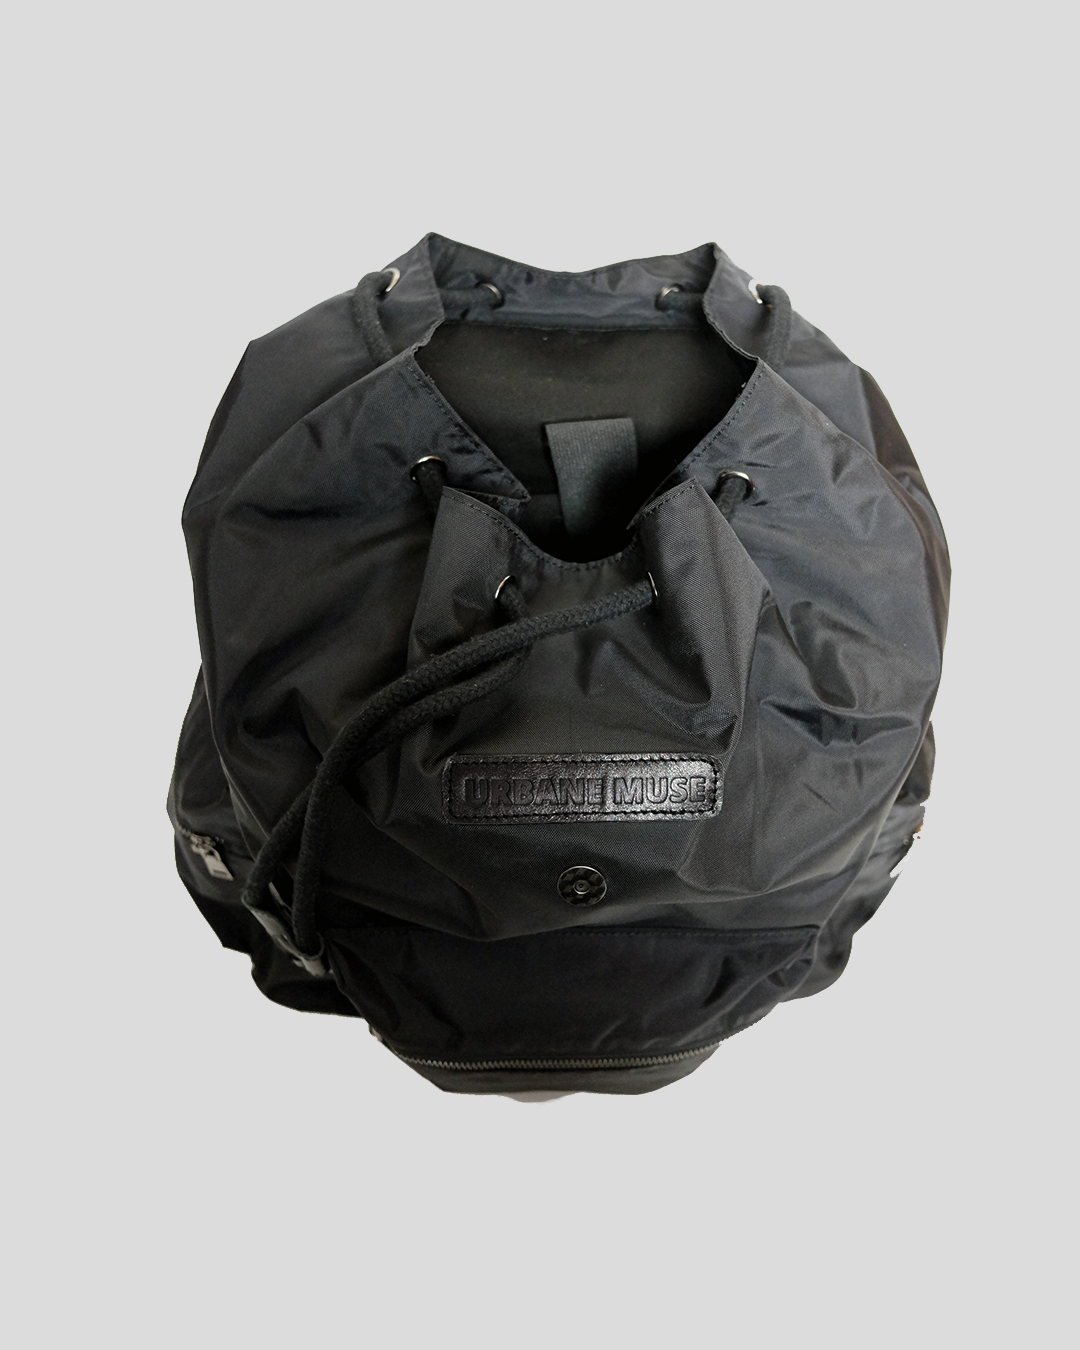 photo-4-BLACK-NYLON-RIPSTOP-BACKPACK-URBANE-MUSE-CHRIS-SMITH